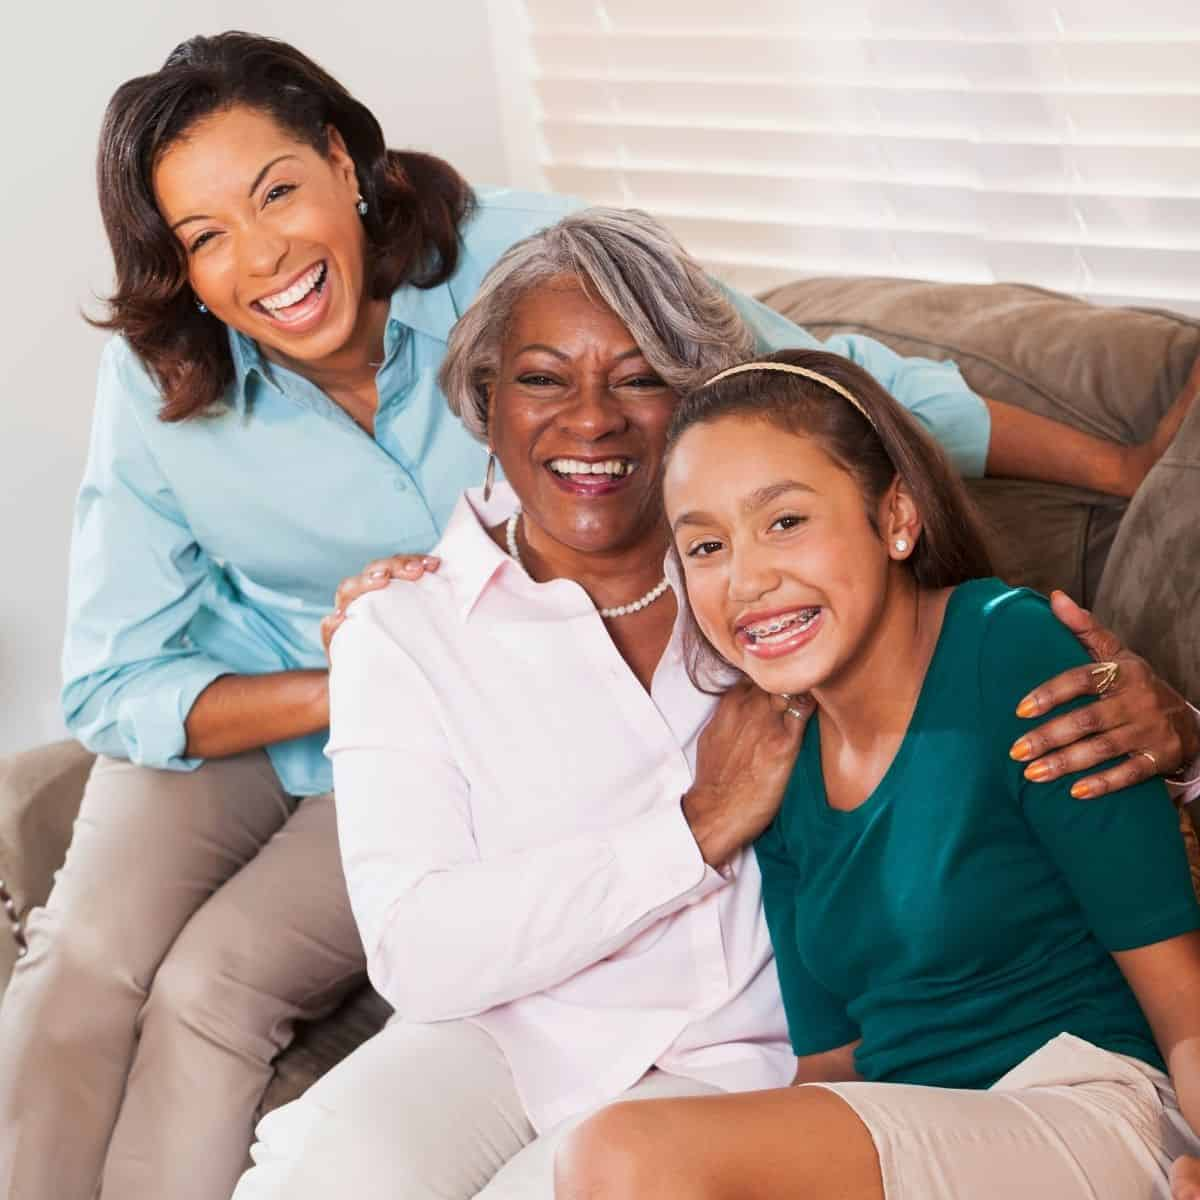 granddaughter, grandmother, and mother pose for a photo while sitting on a couch